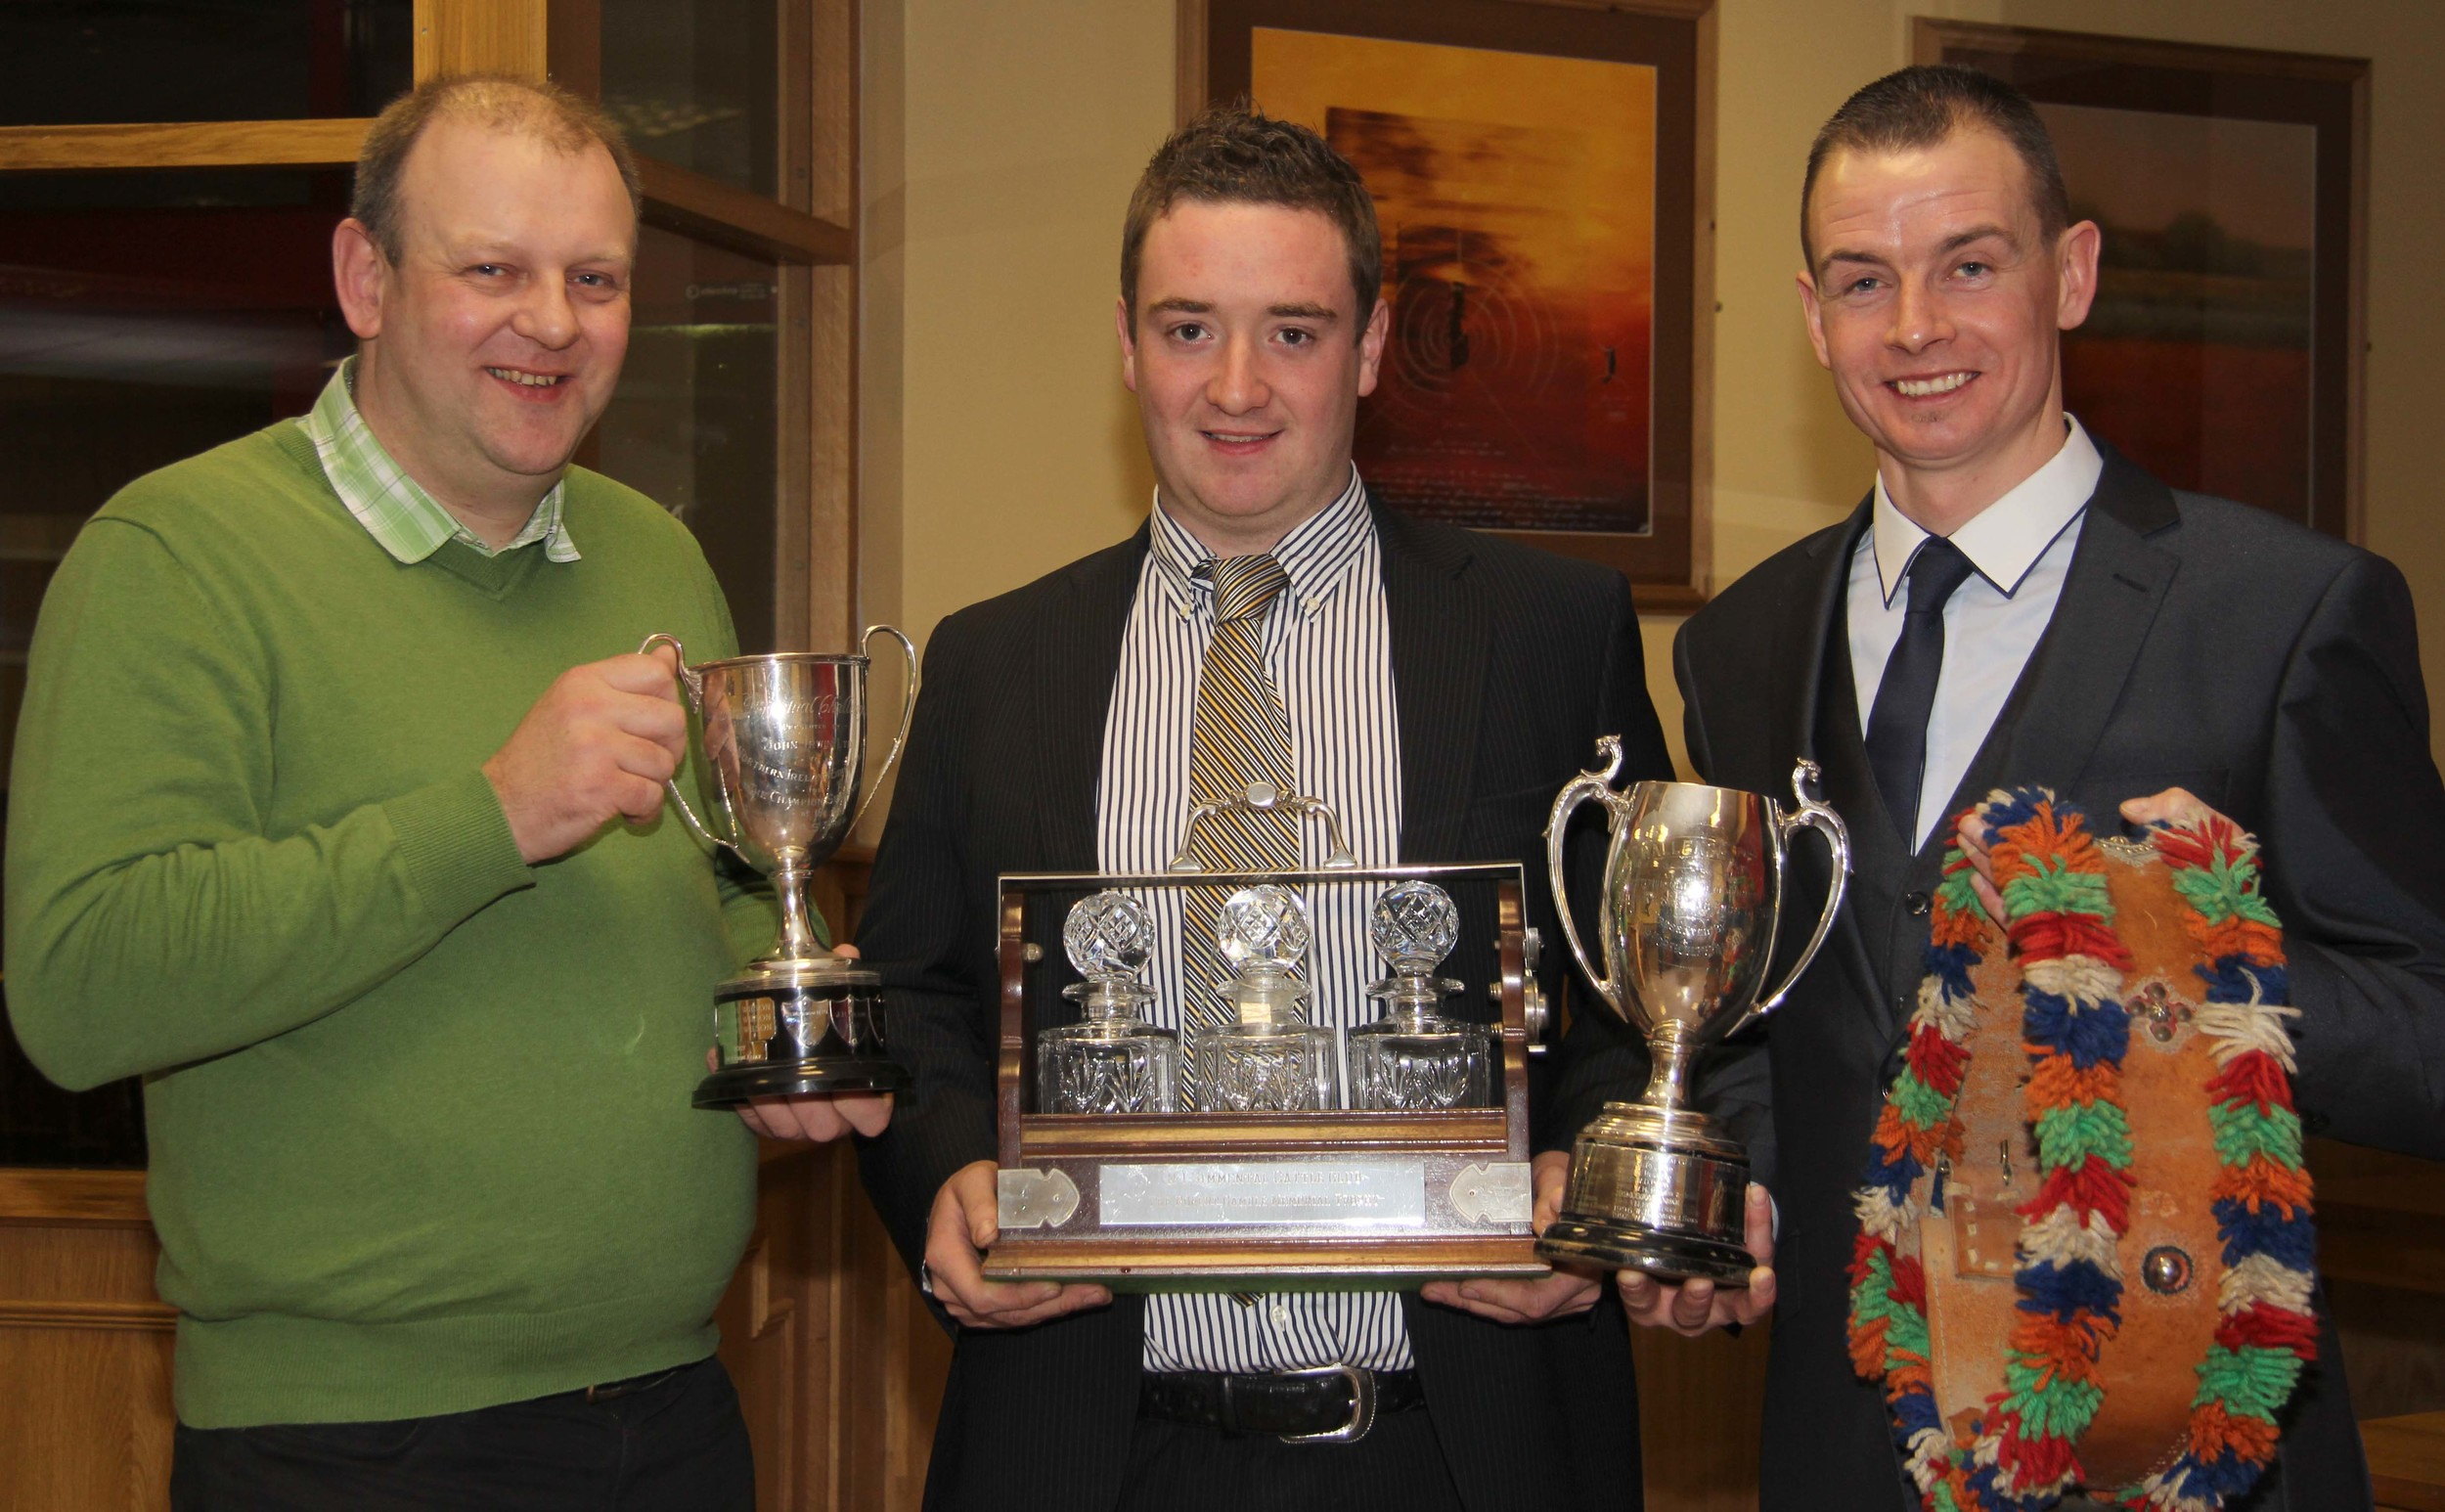 Marcus Berry, centre, receives an array of trophies on behalf of Noel and Mai Kilpatrick, Banbridge, at the NI Simmental Club's annual dinner. He was congratulated by vice-chairman Matthew Cunning, and chairman Richard Rodgers.